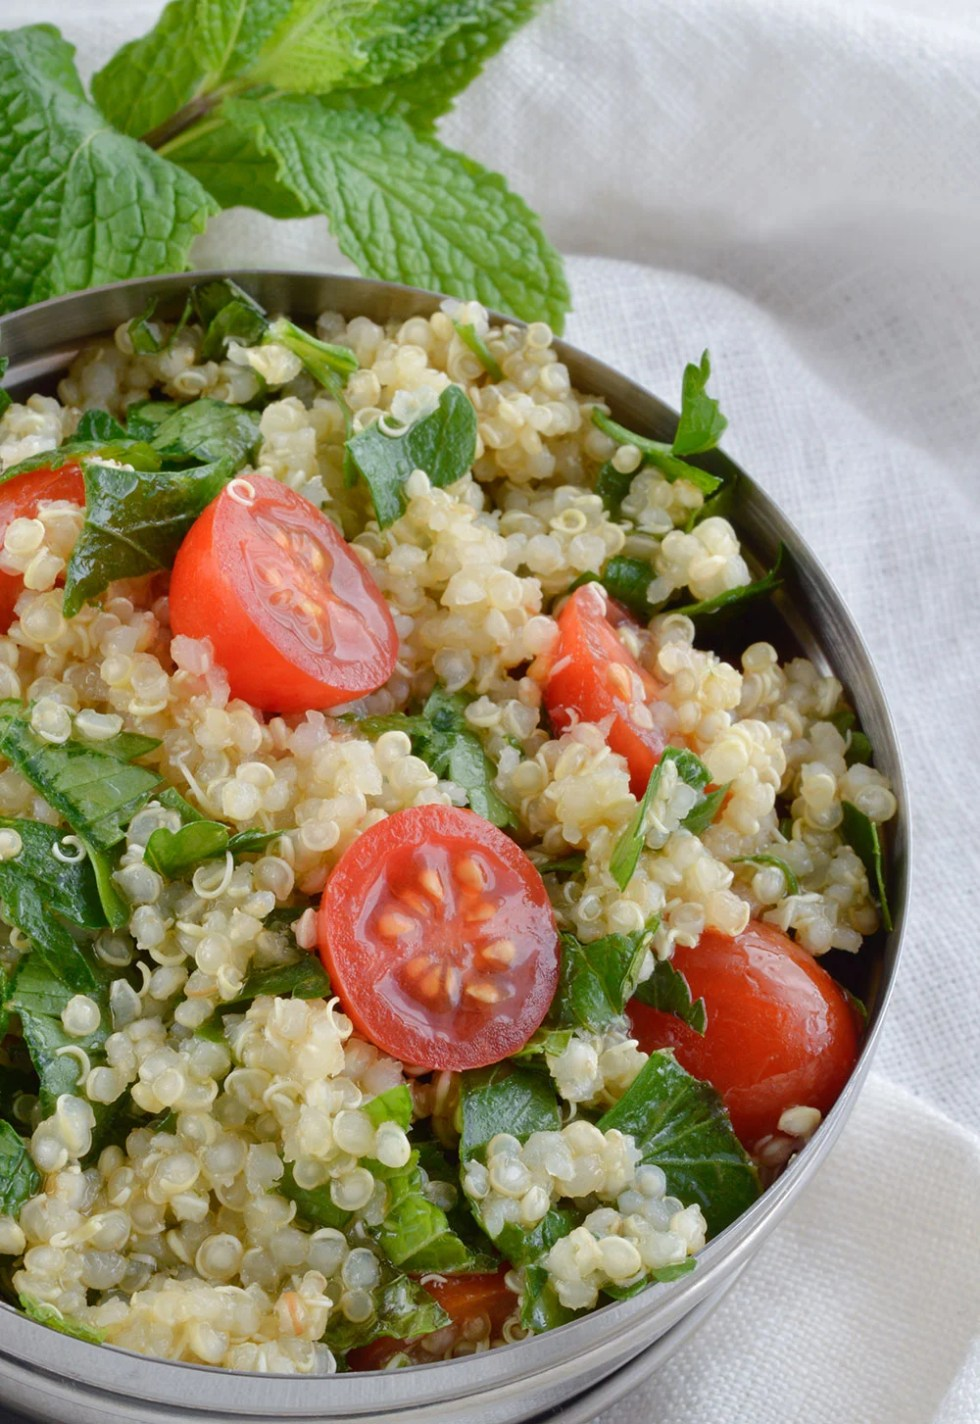 Quinoa Tabouleh Salad is a fresh and healthy lunch or dinner. Mint, parsley, tomatoes and lemon make this gluten free salad extra flavorful! This recipe is also known as tabbouleh or tabouli.